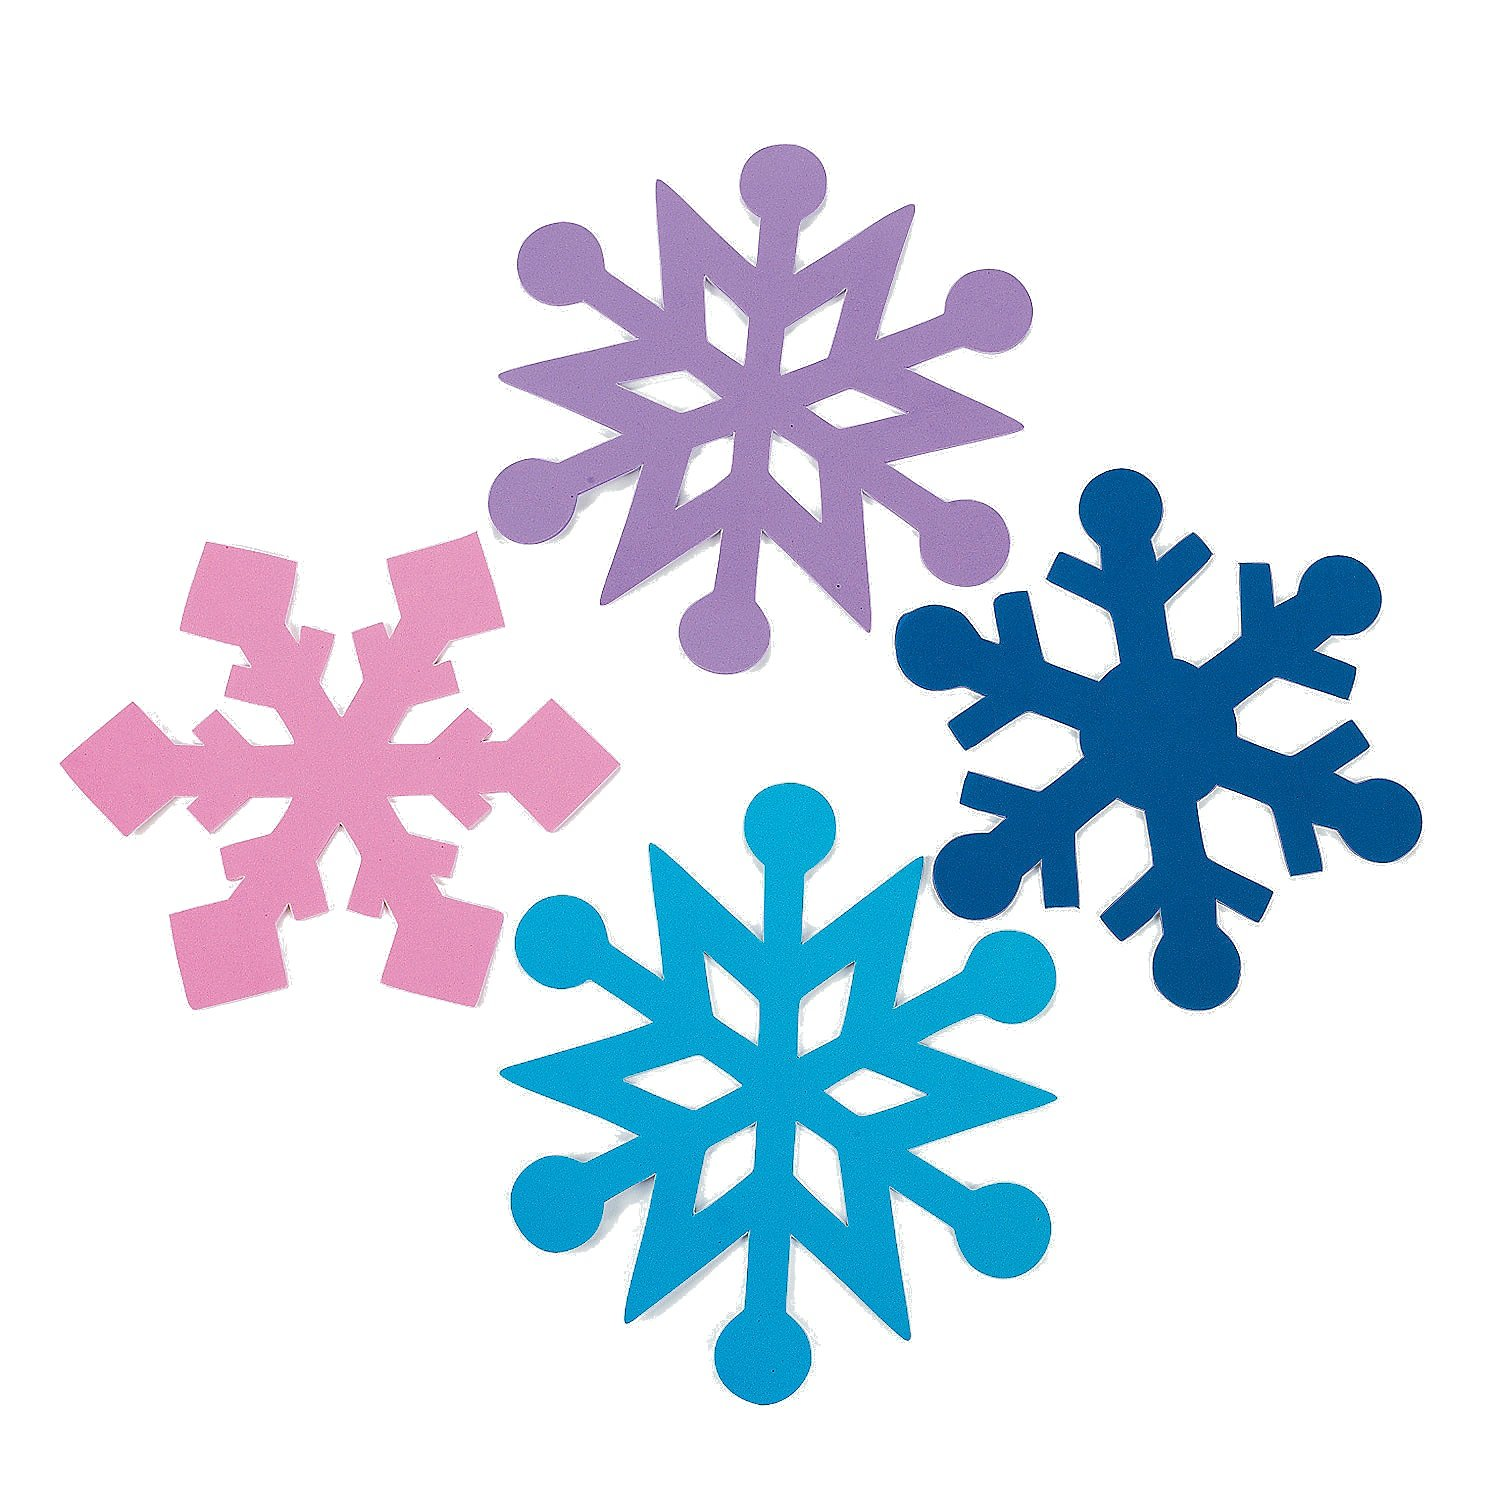 amazon com foam jumbo snowflakes 24 pc winter craft foam shapes